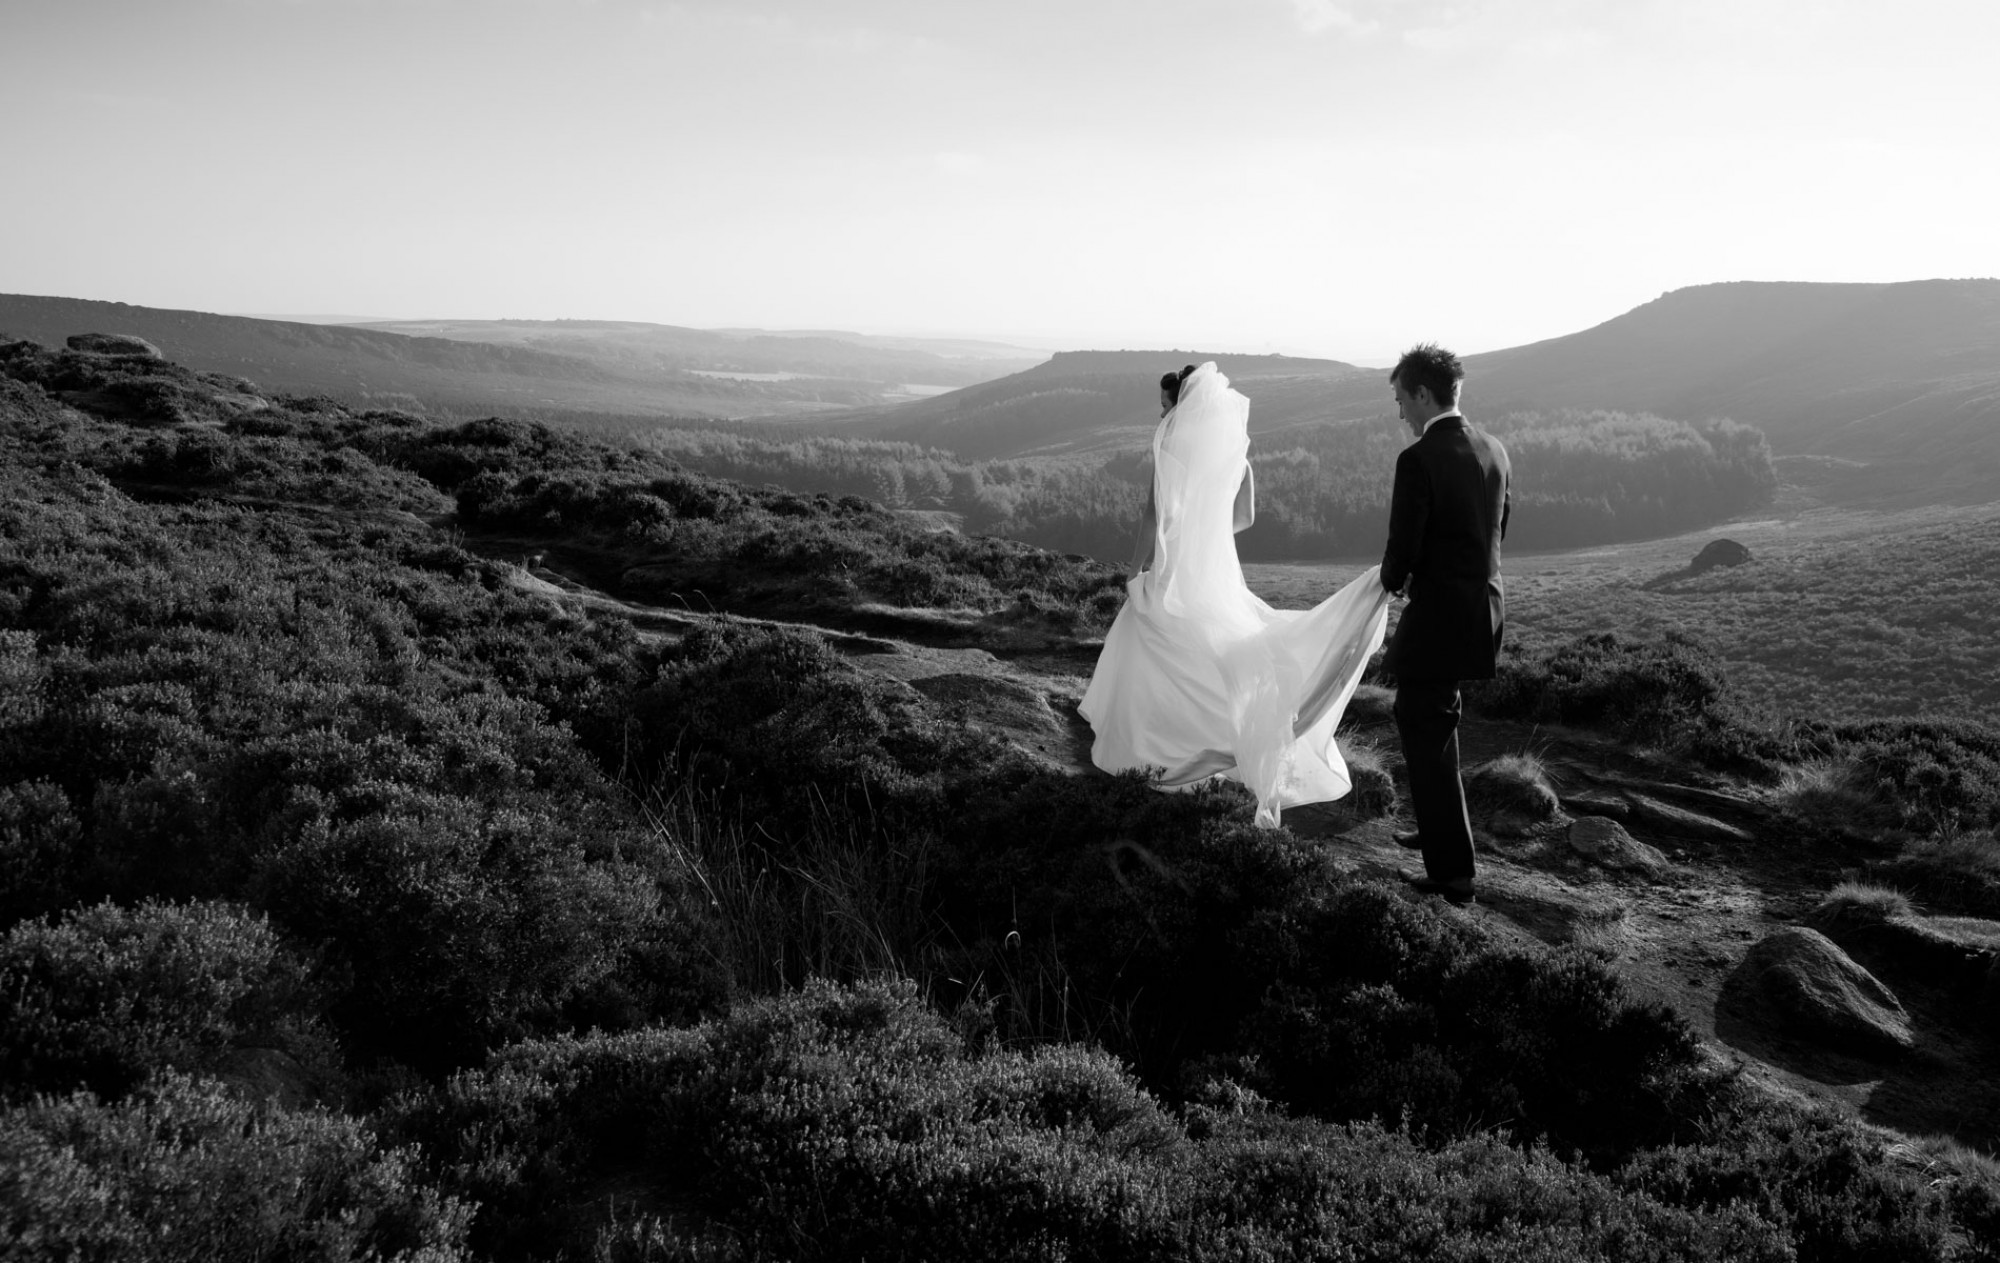 Beautiful relaxed wedding photography, shot in the Derbyshire Peak District by Derbyshire & Cheshire wedding photographer Tim Hensel